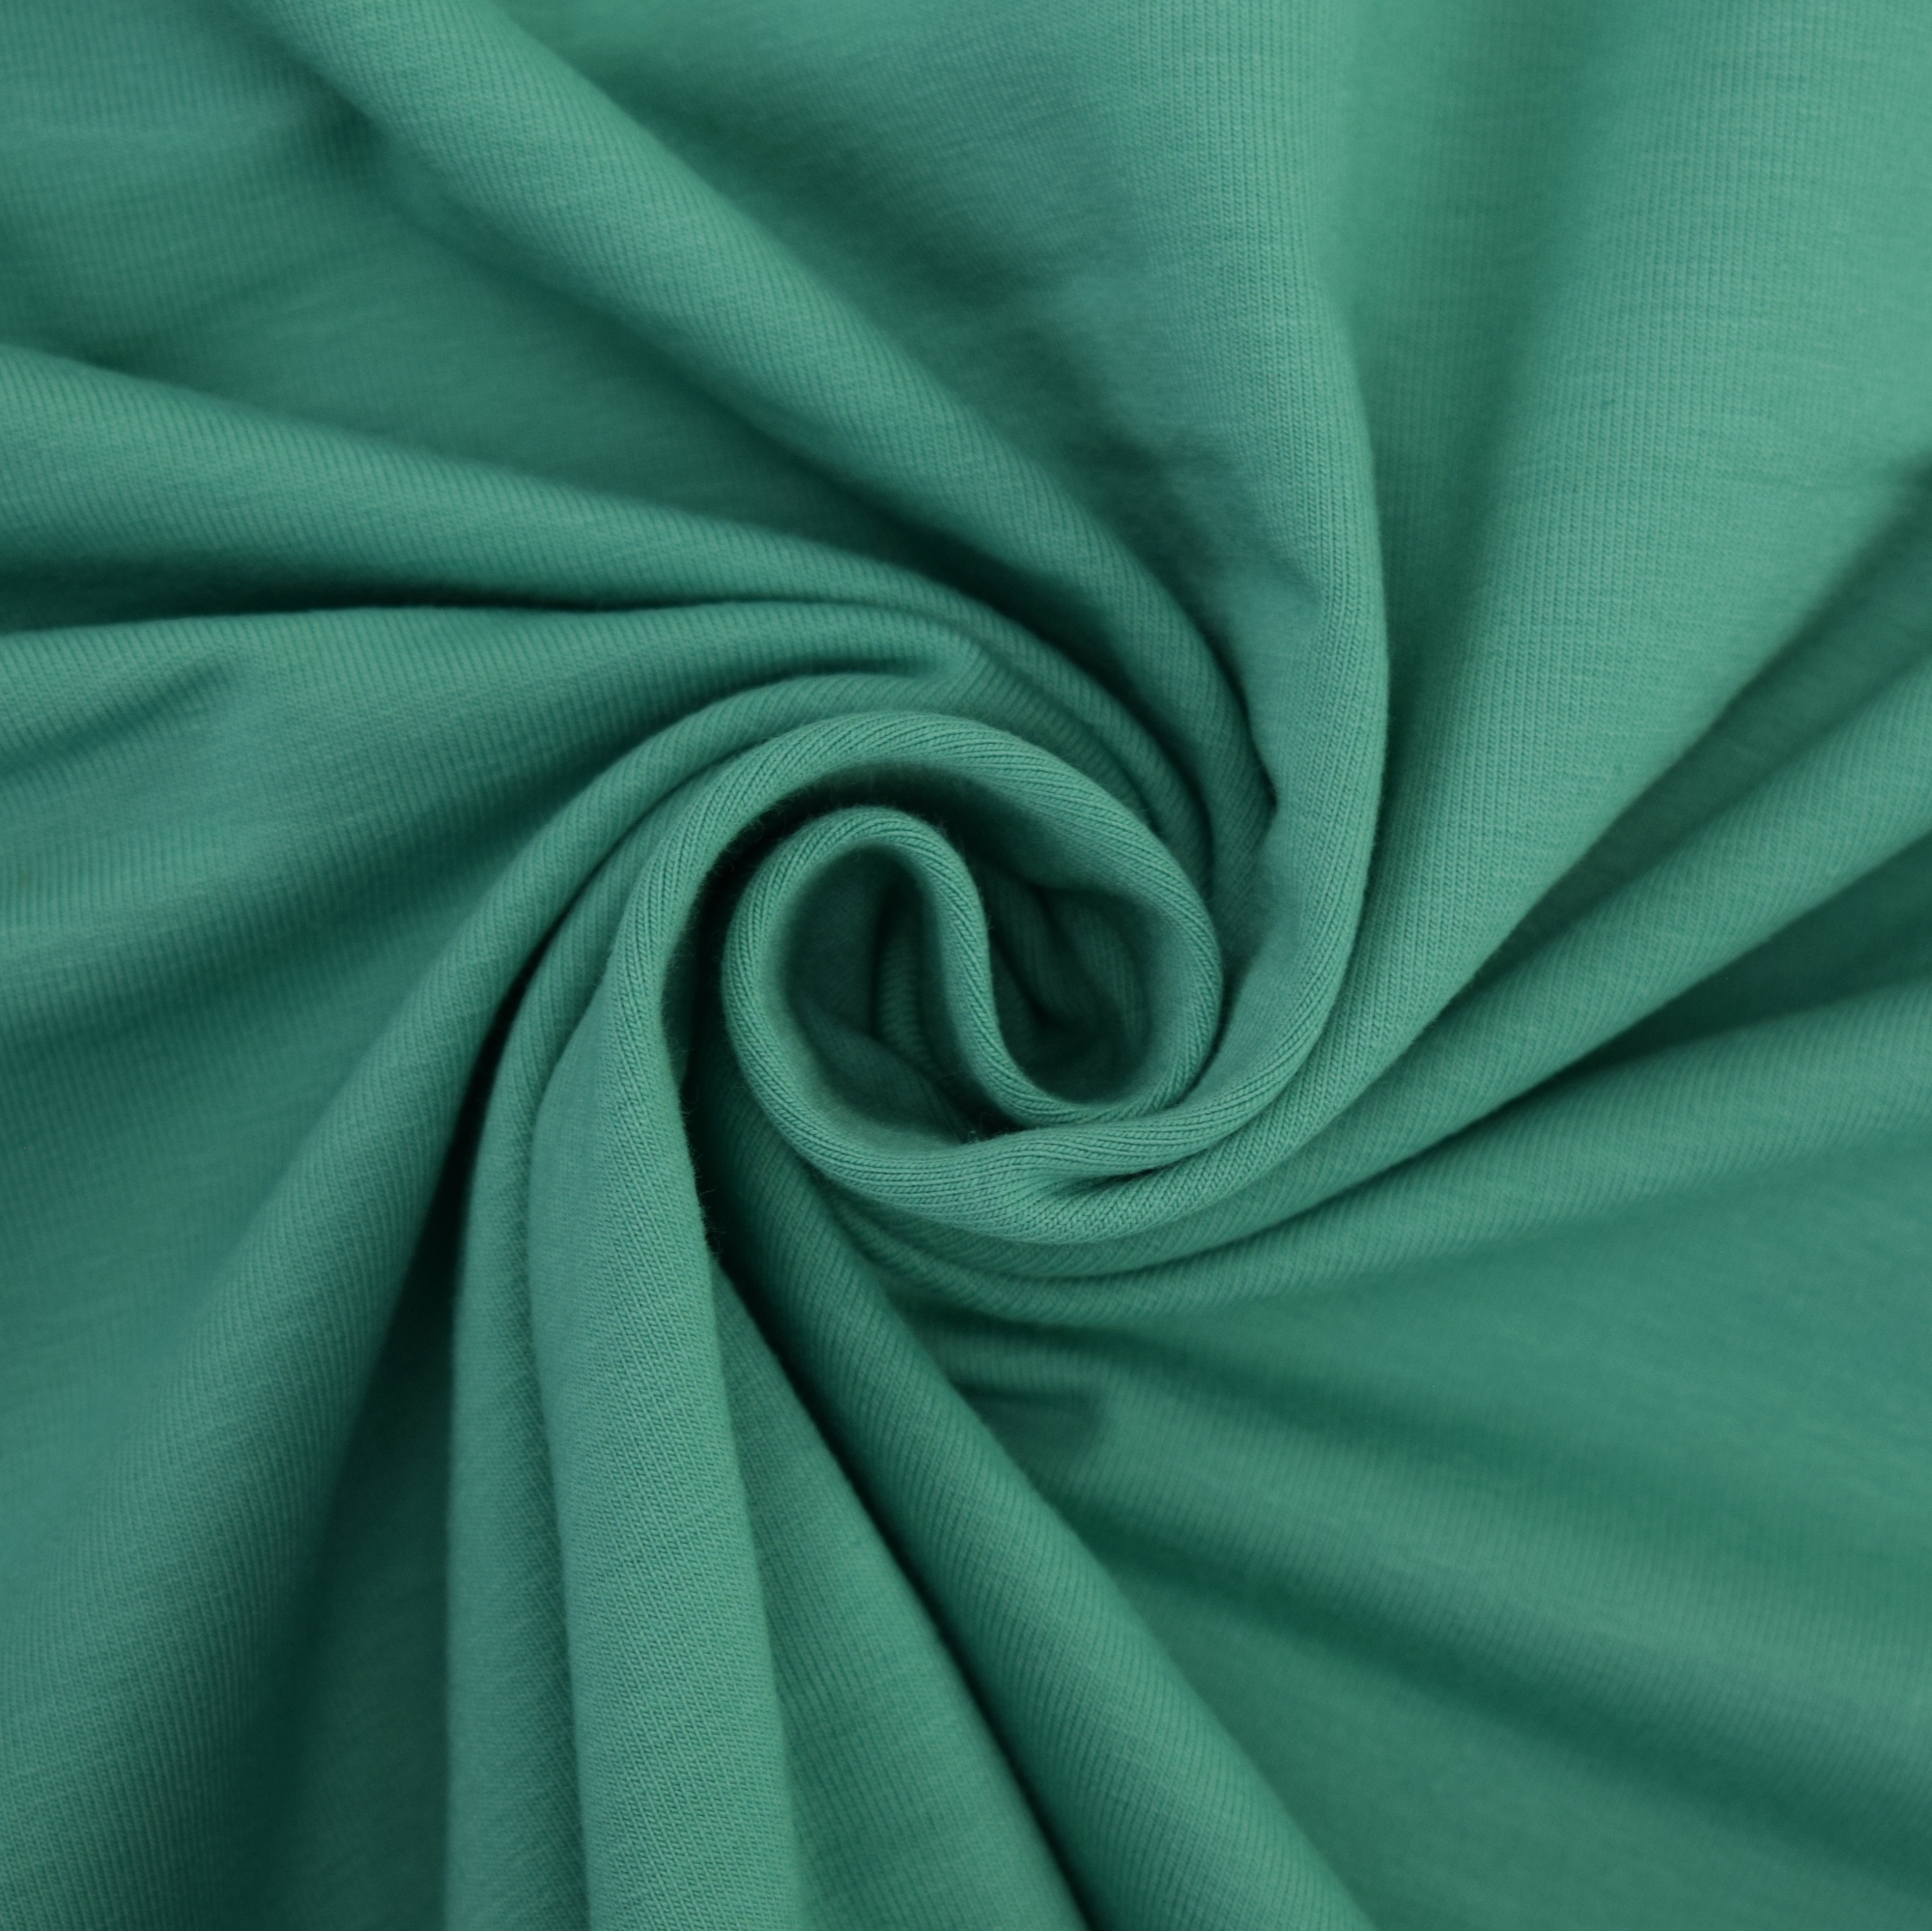 Cotton jersey plain, light teal | 455.421-8305 | petrol